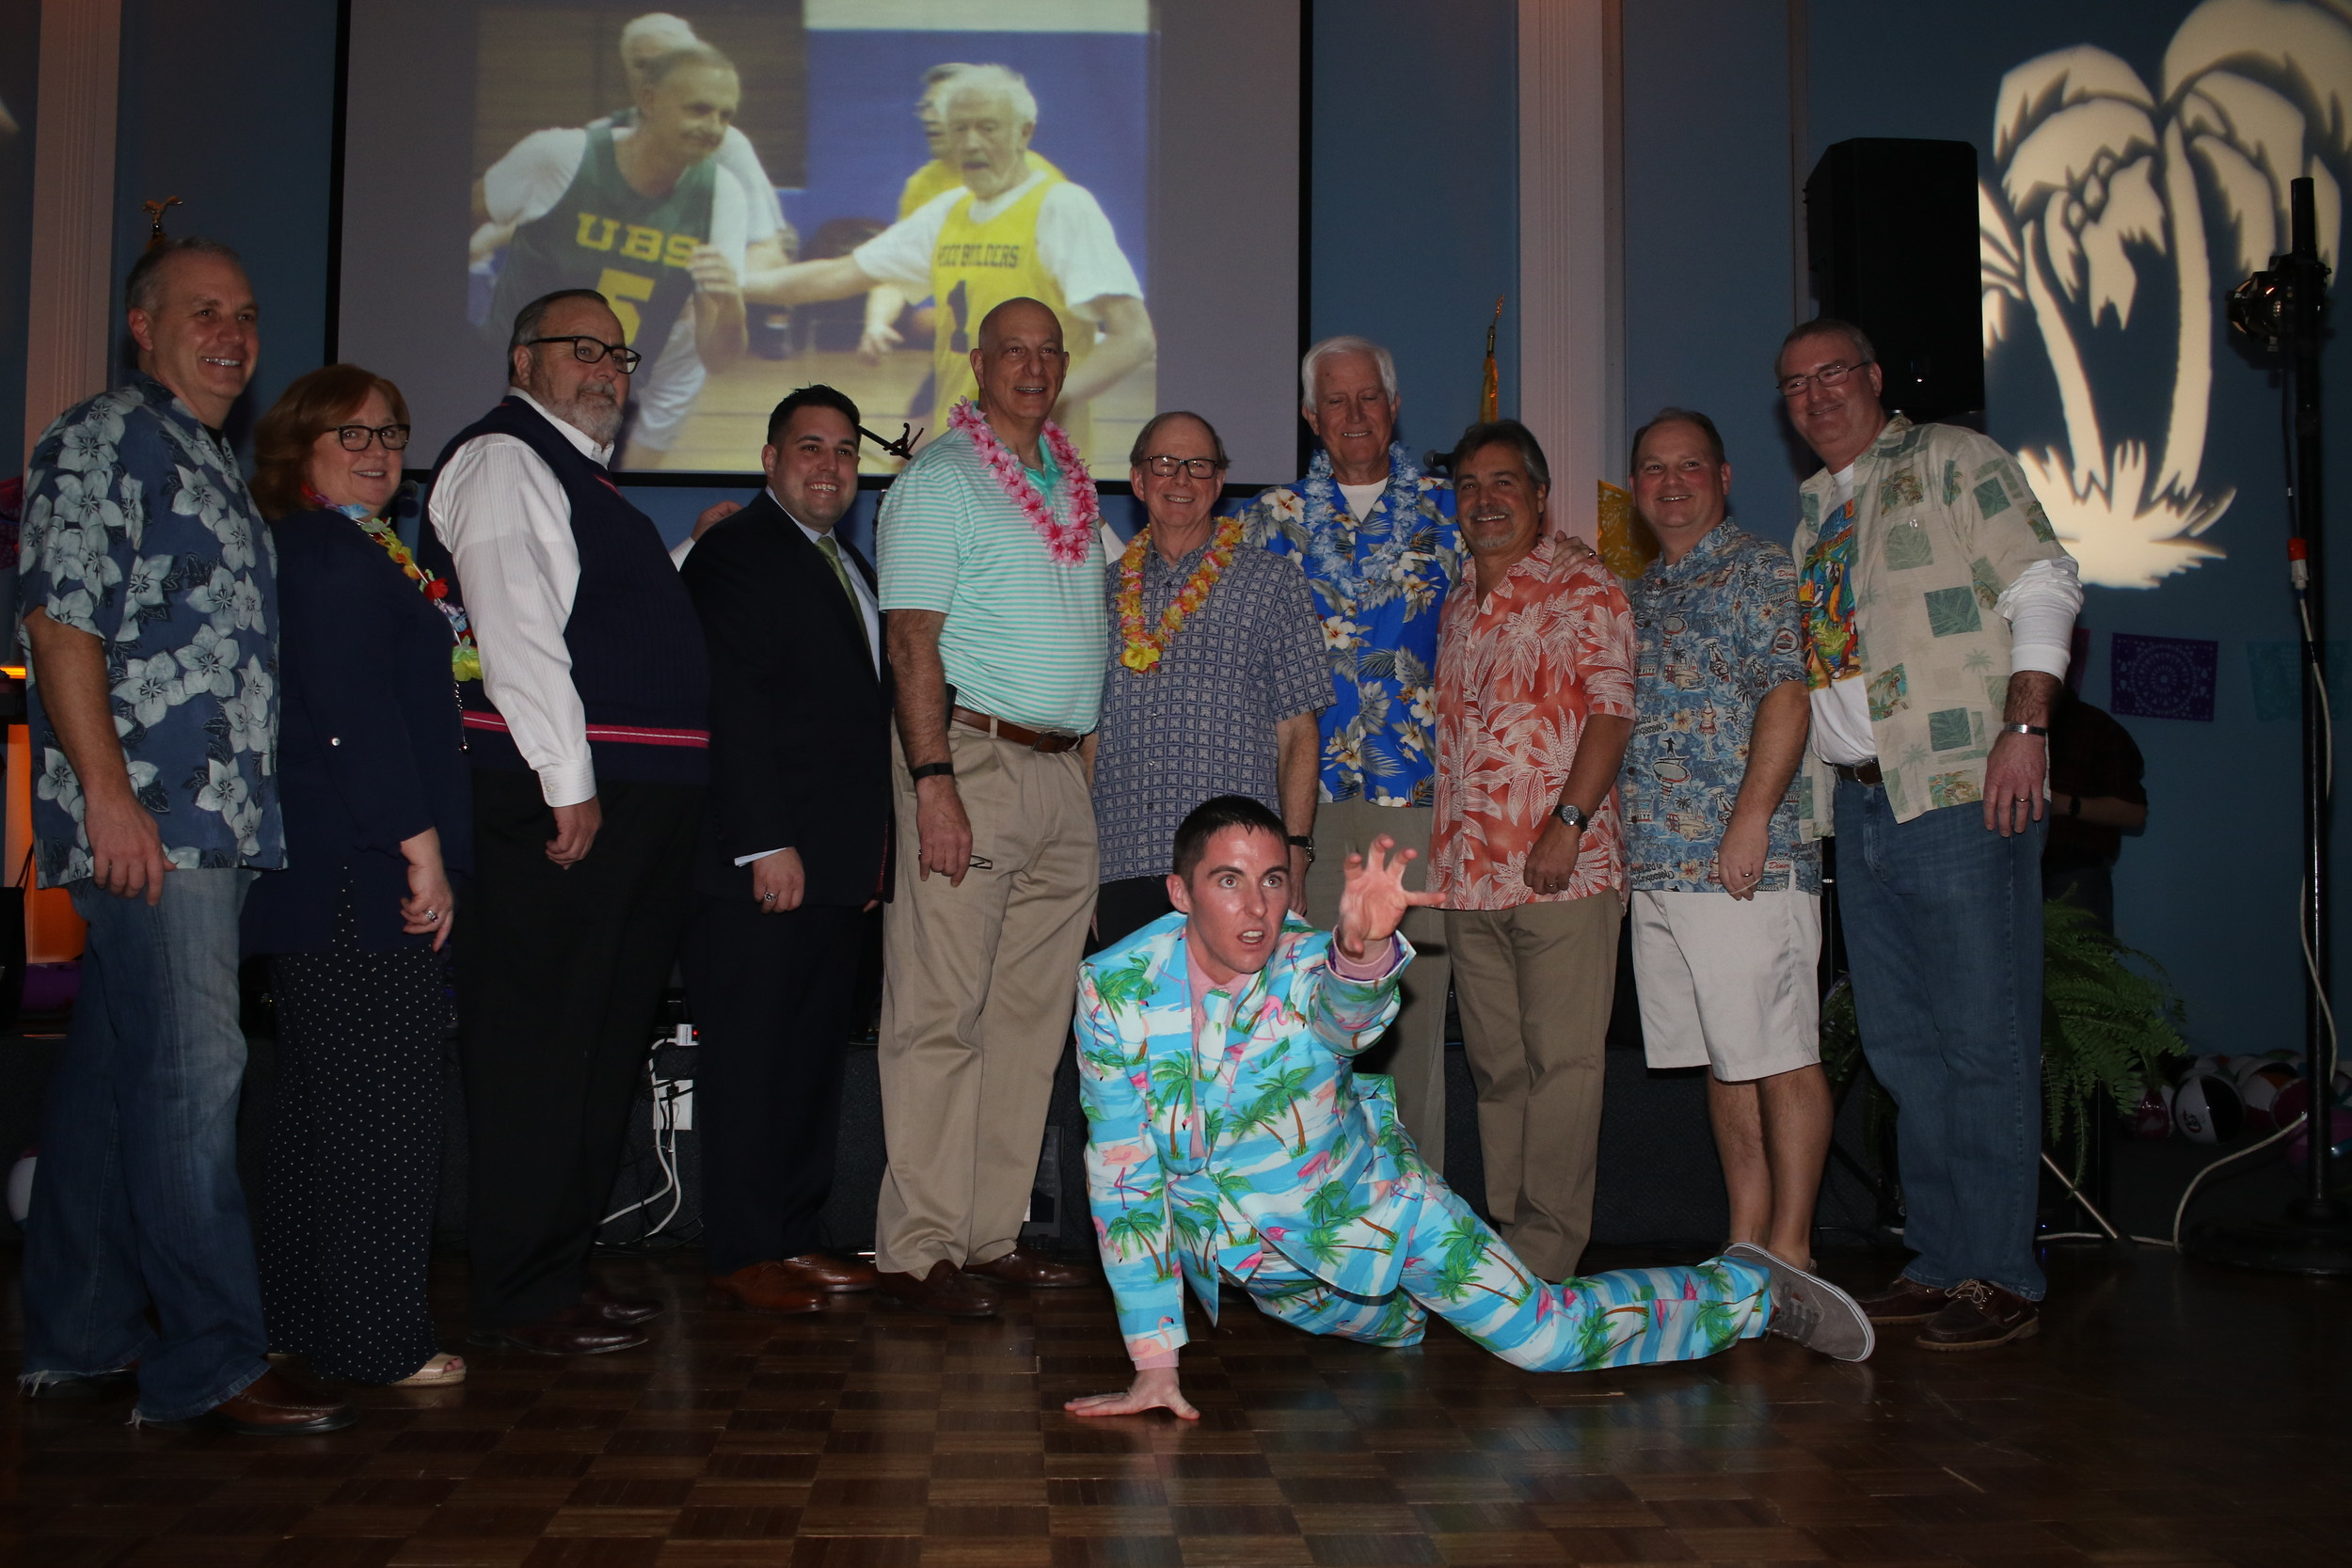 The scene was tropical at the fourth annual Margaritaville.